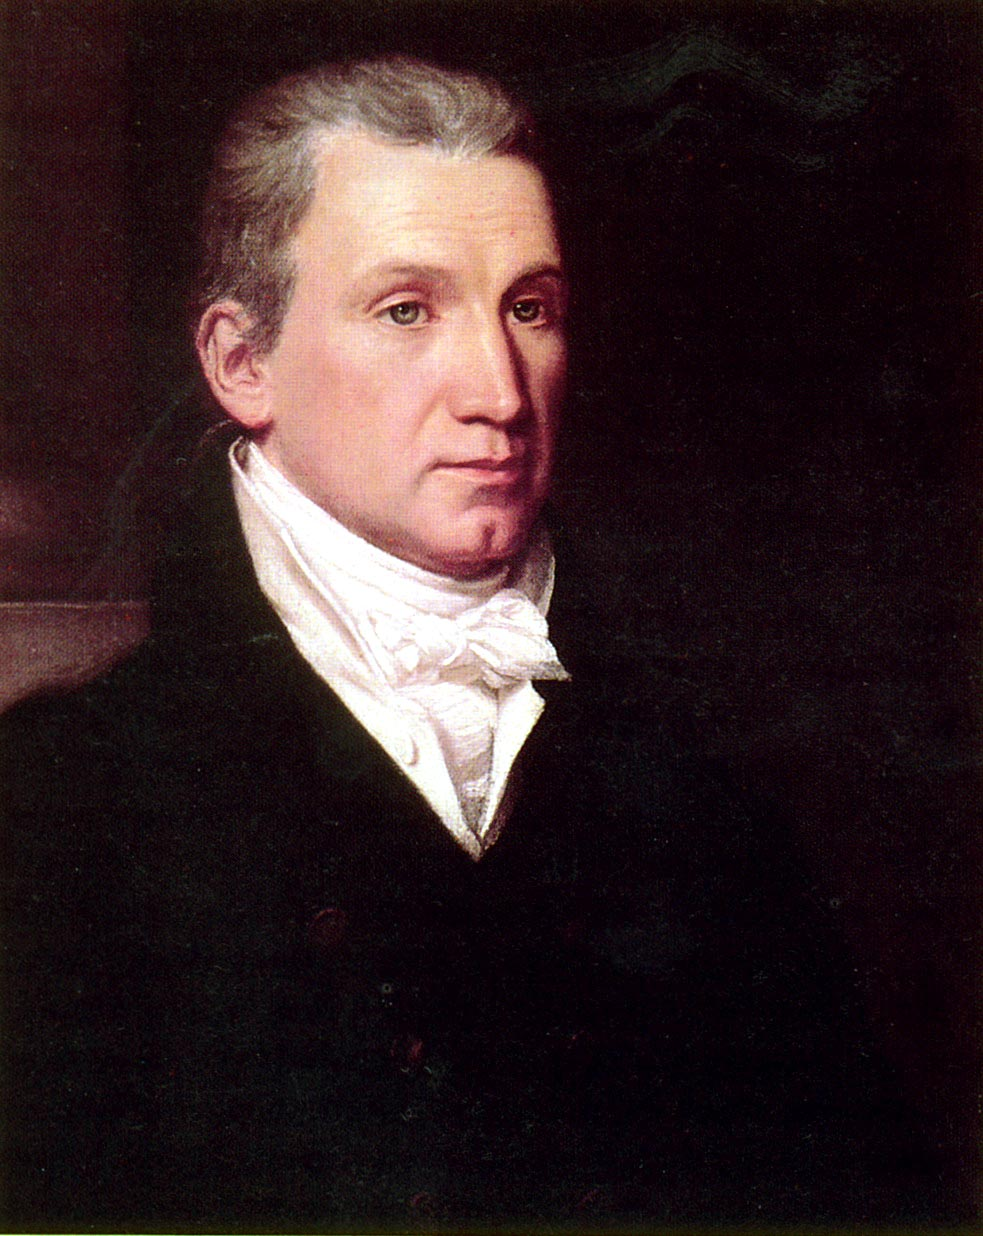 https://i1.wp.com/upload.wikimedia.org/wikipedia/commons/6/6c/James_Monroe_02.jpg